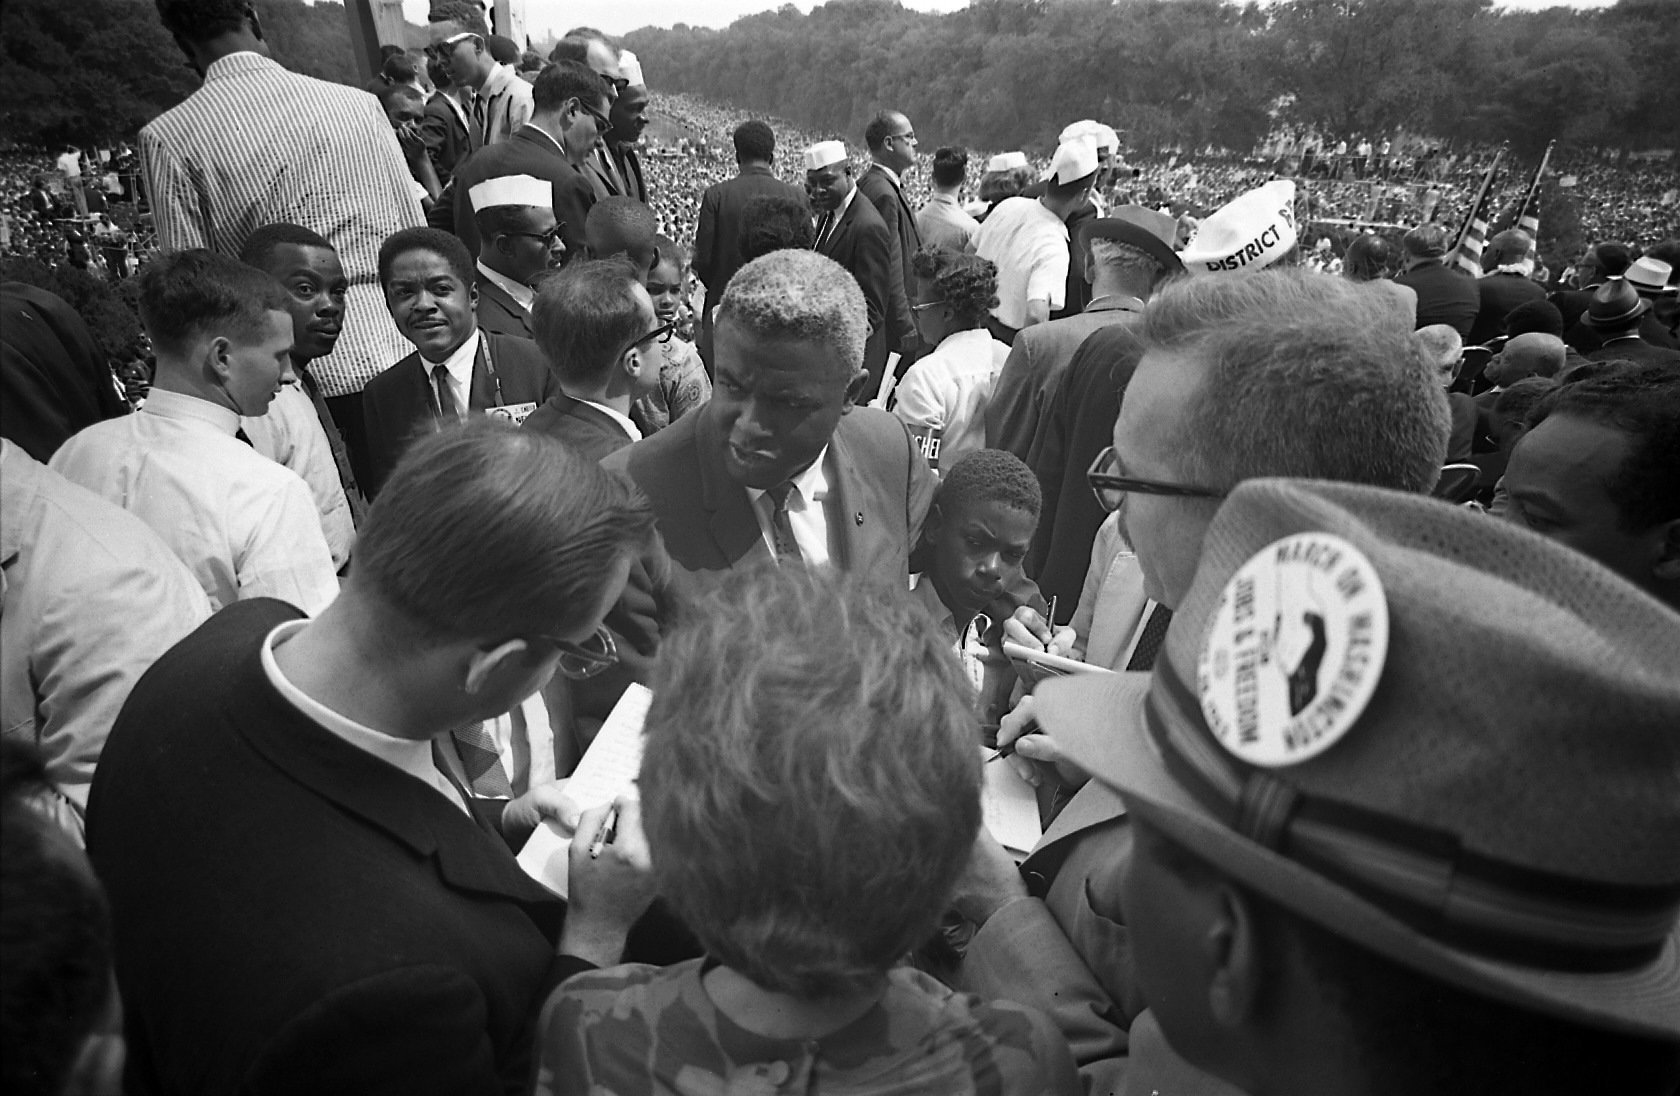 Participating in the March on Washington 1963